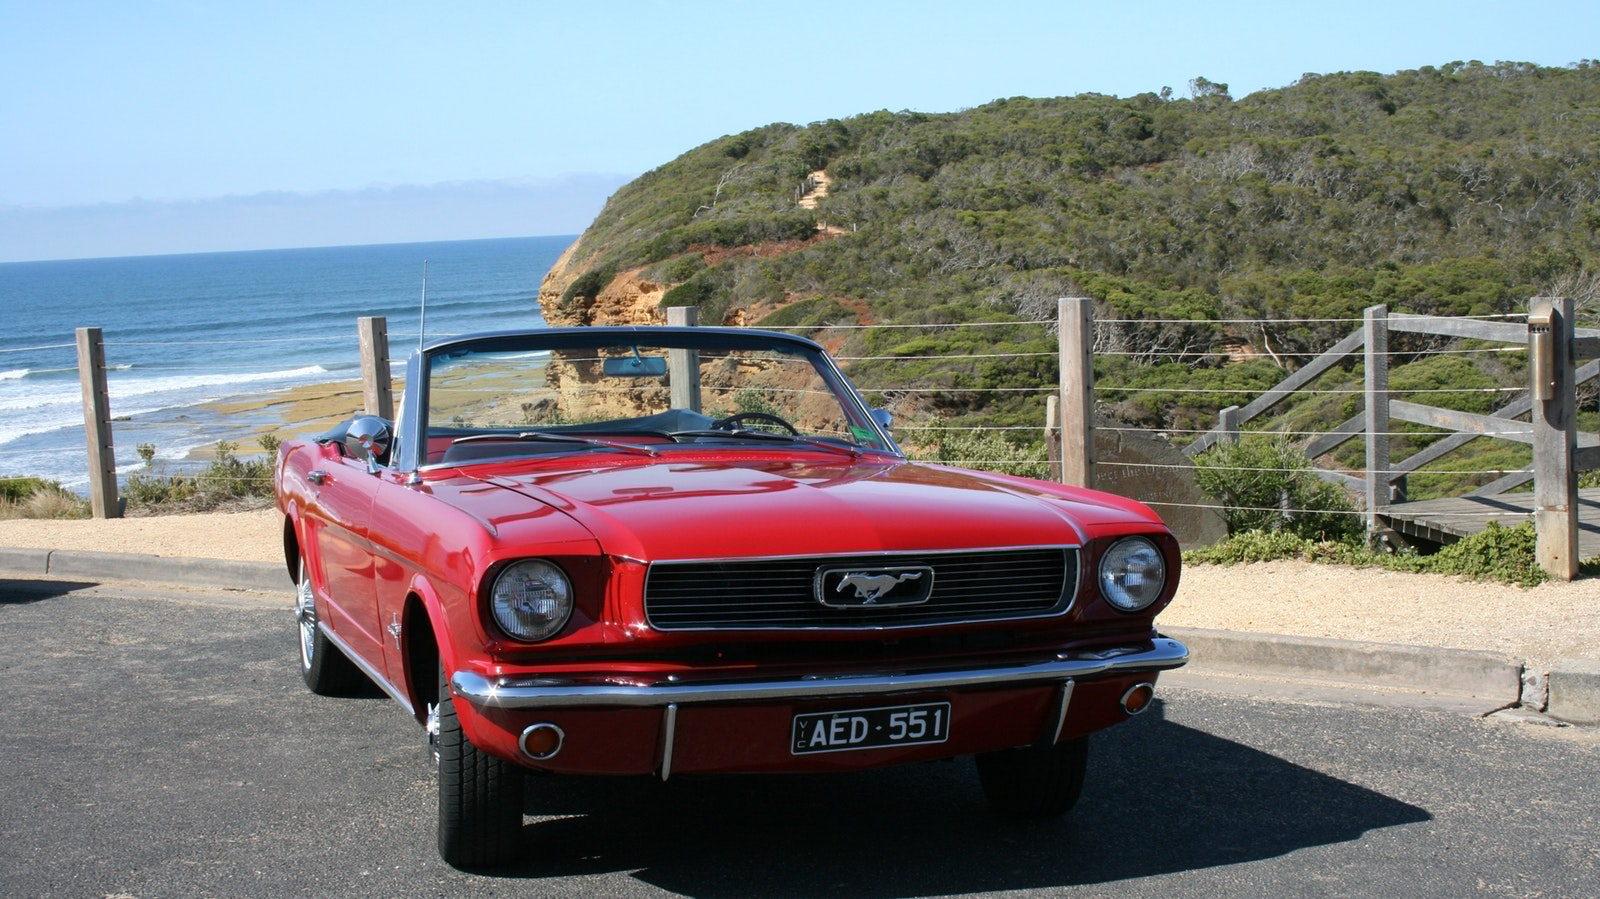 Mustang at Bells Beach